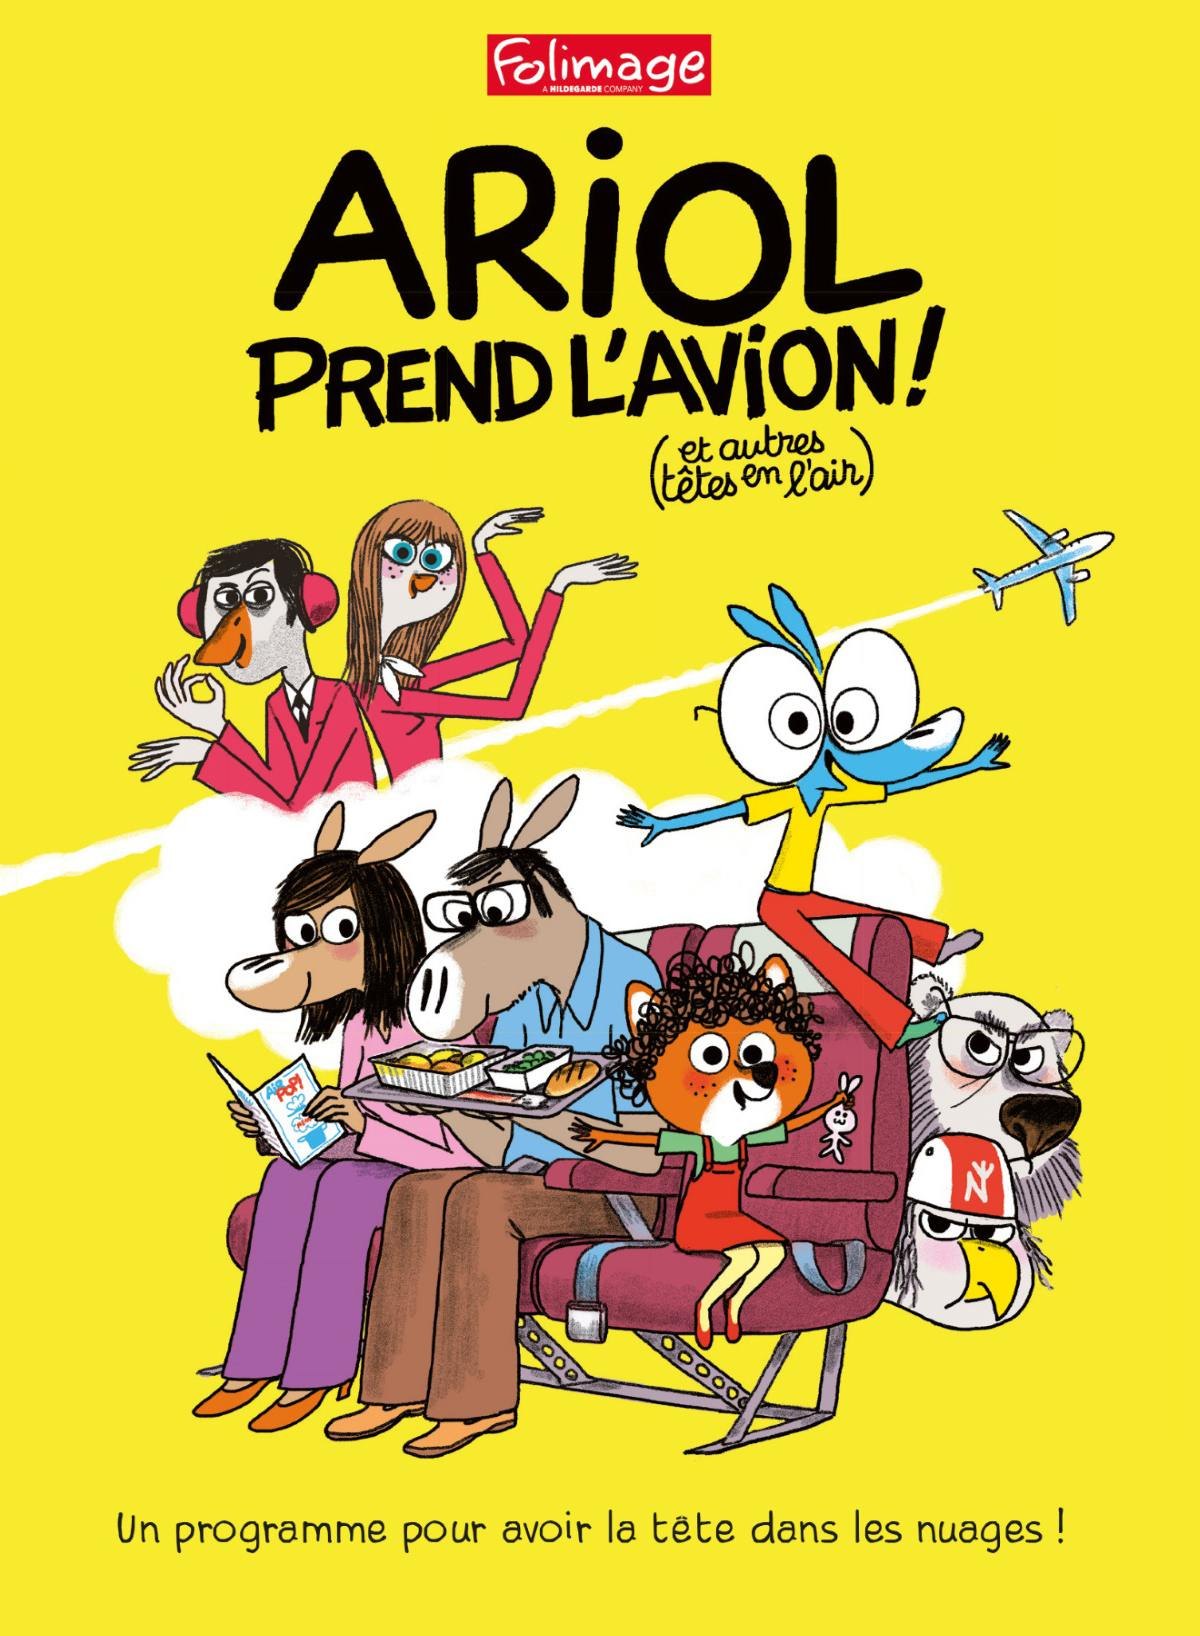 Ariol prend l'avion (et autres tetes en l'air) - dvd